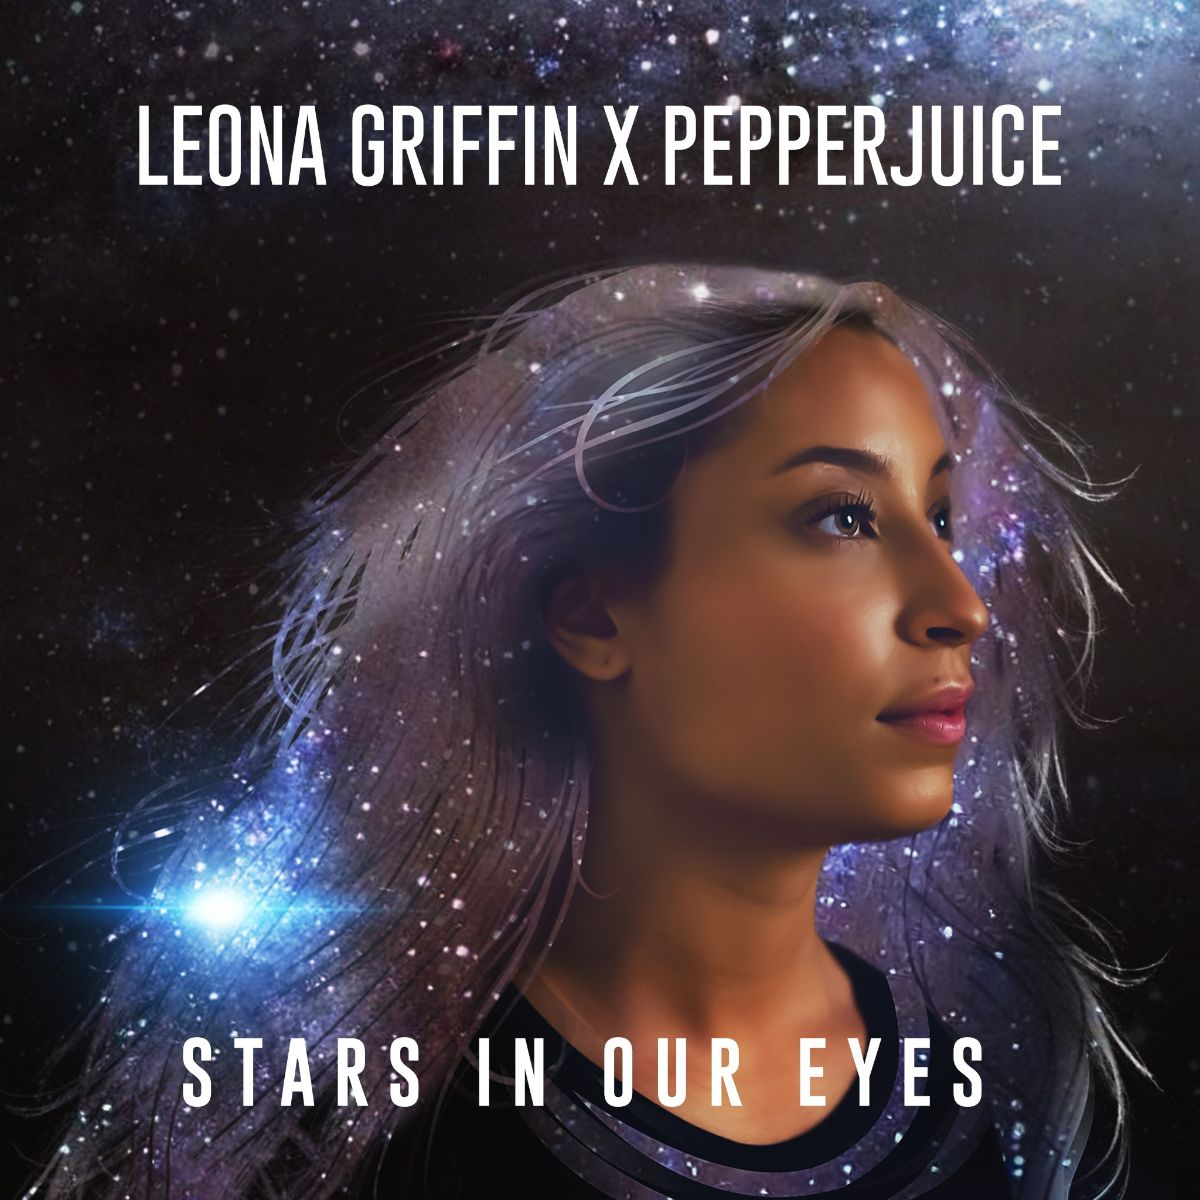 Leona Griffin & Perpperjuice – STARS IN OUR EYES